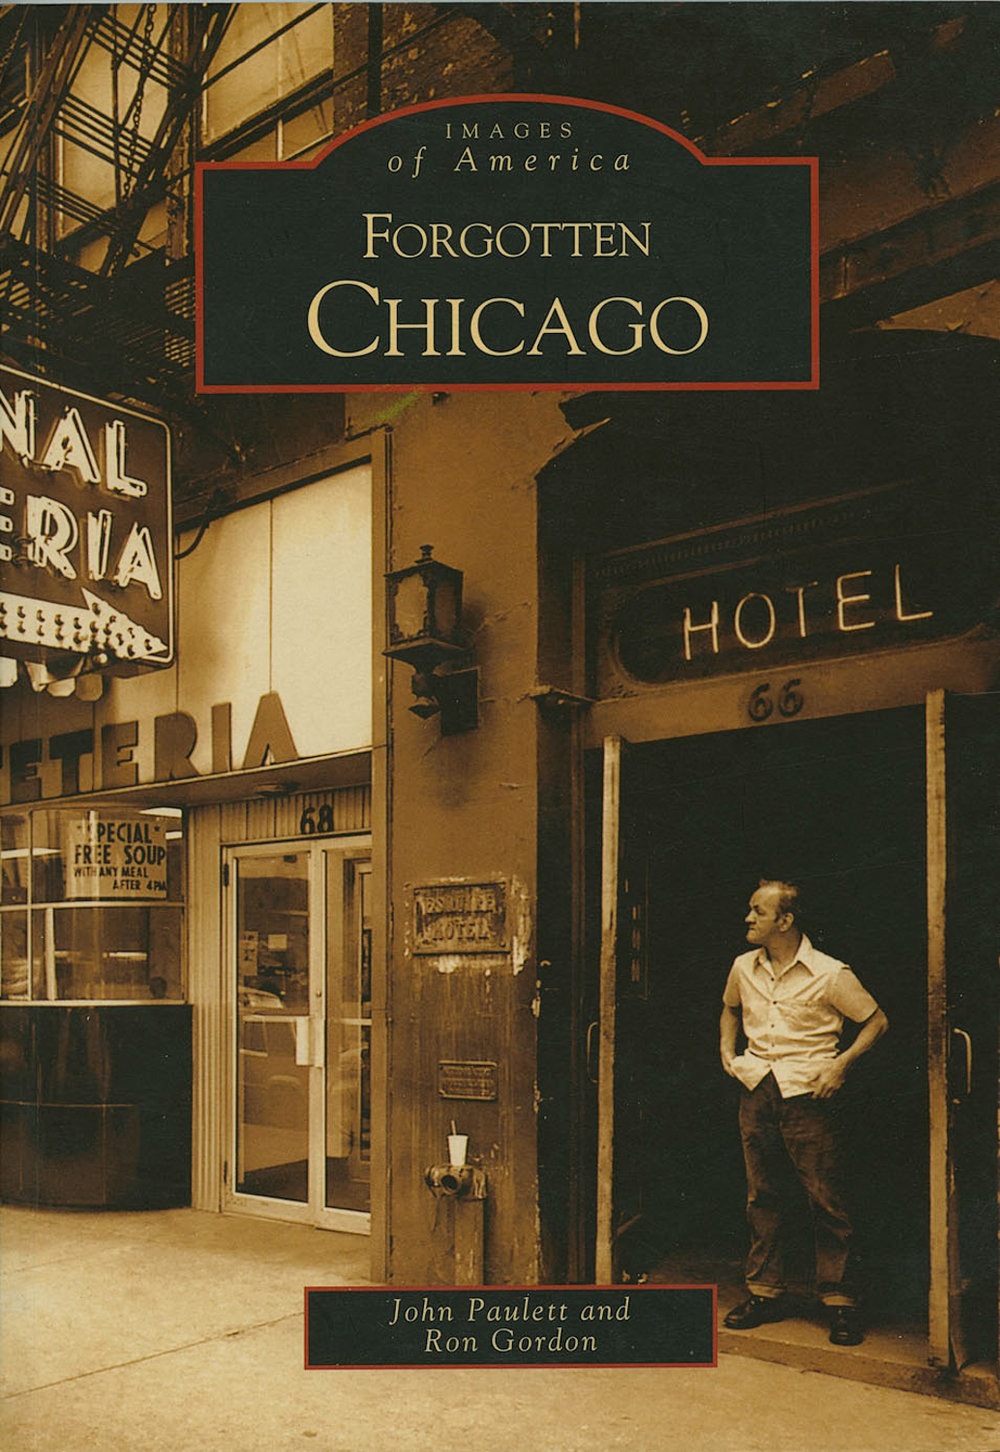 Forgotten Chicago Arcadia Publications with John Paulett 2004